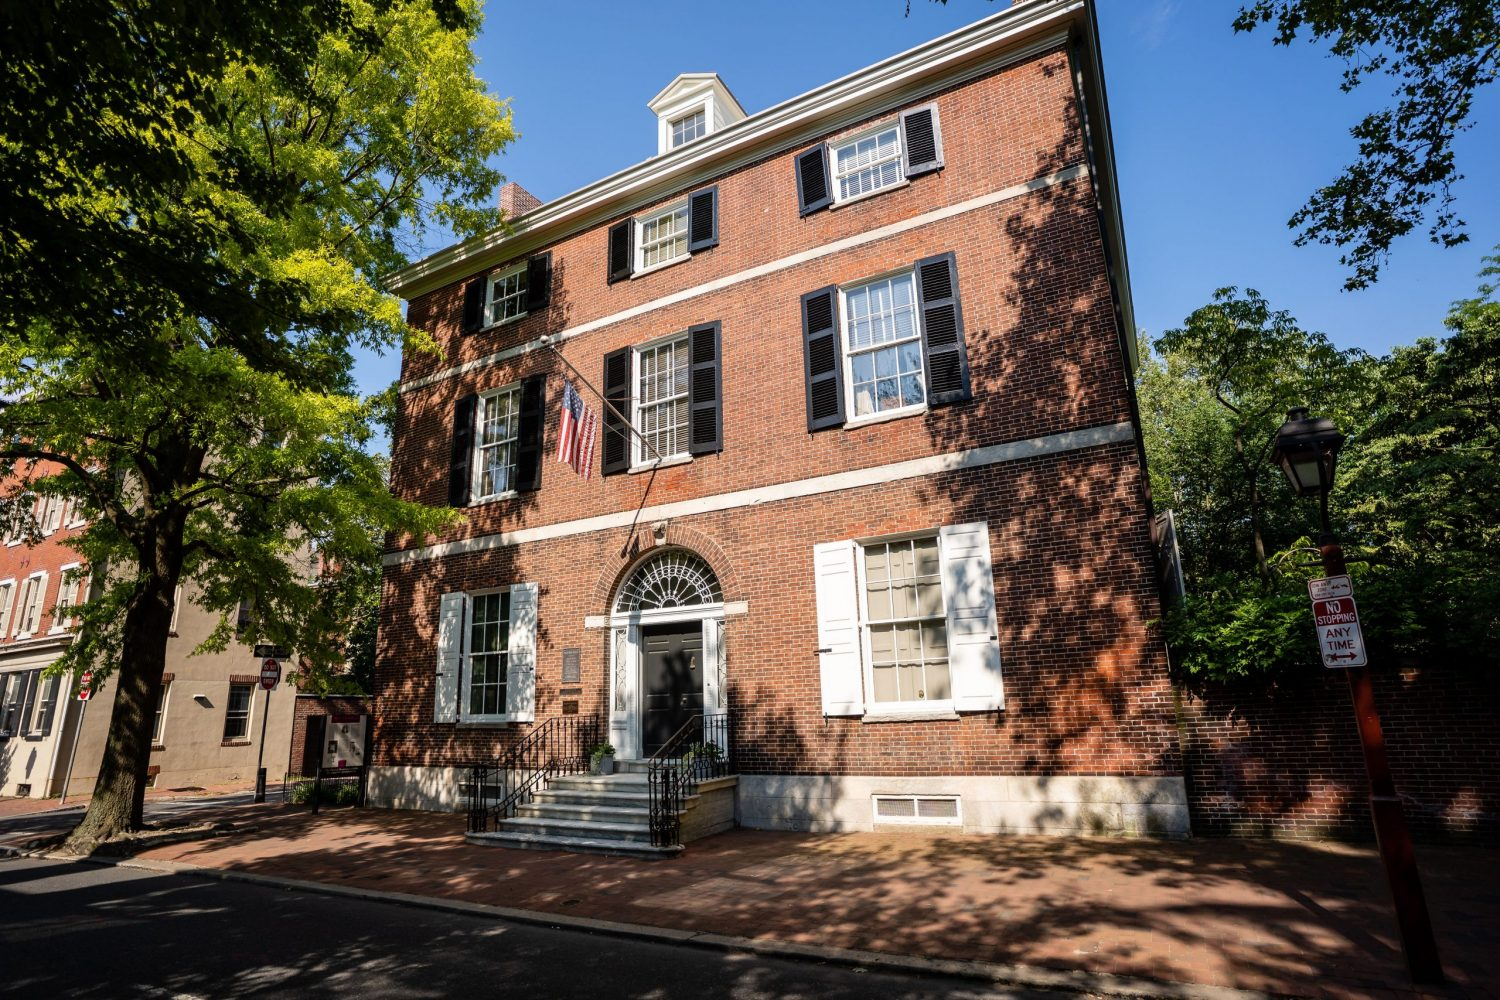 Hill Physick House philly photography brick